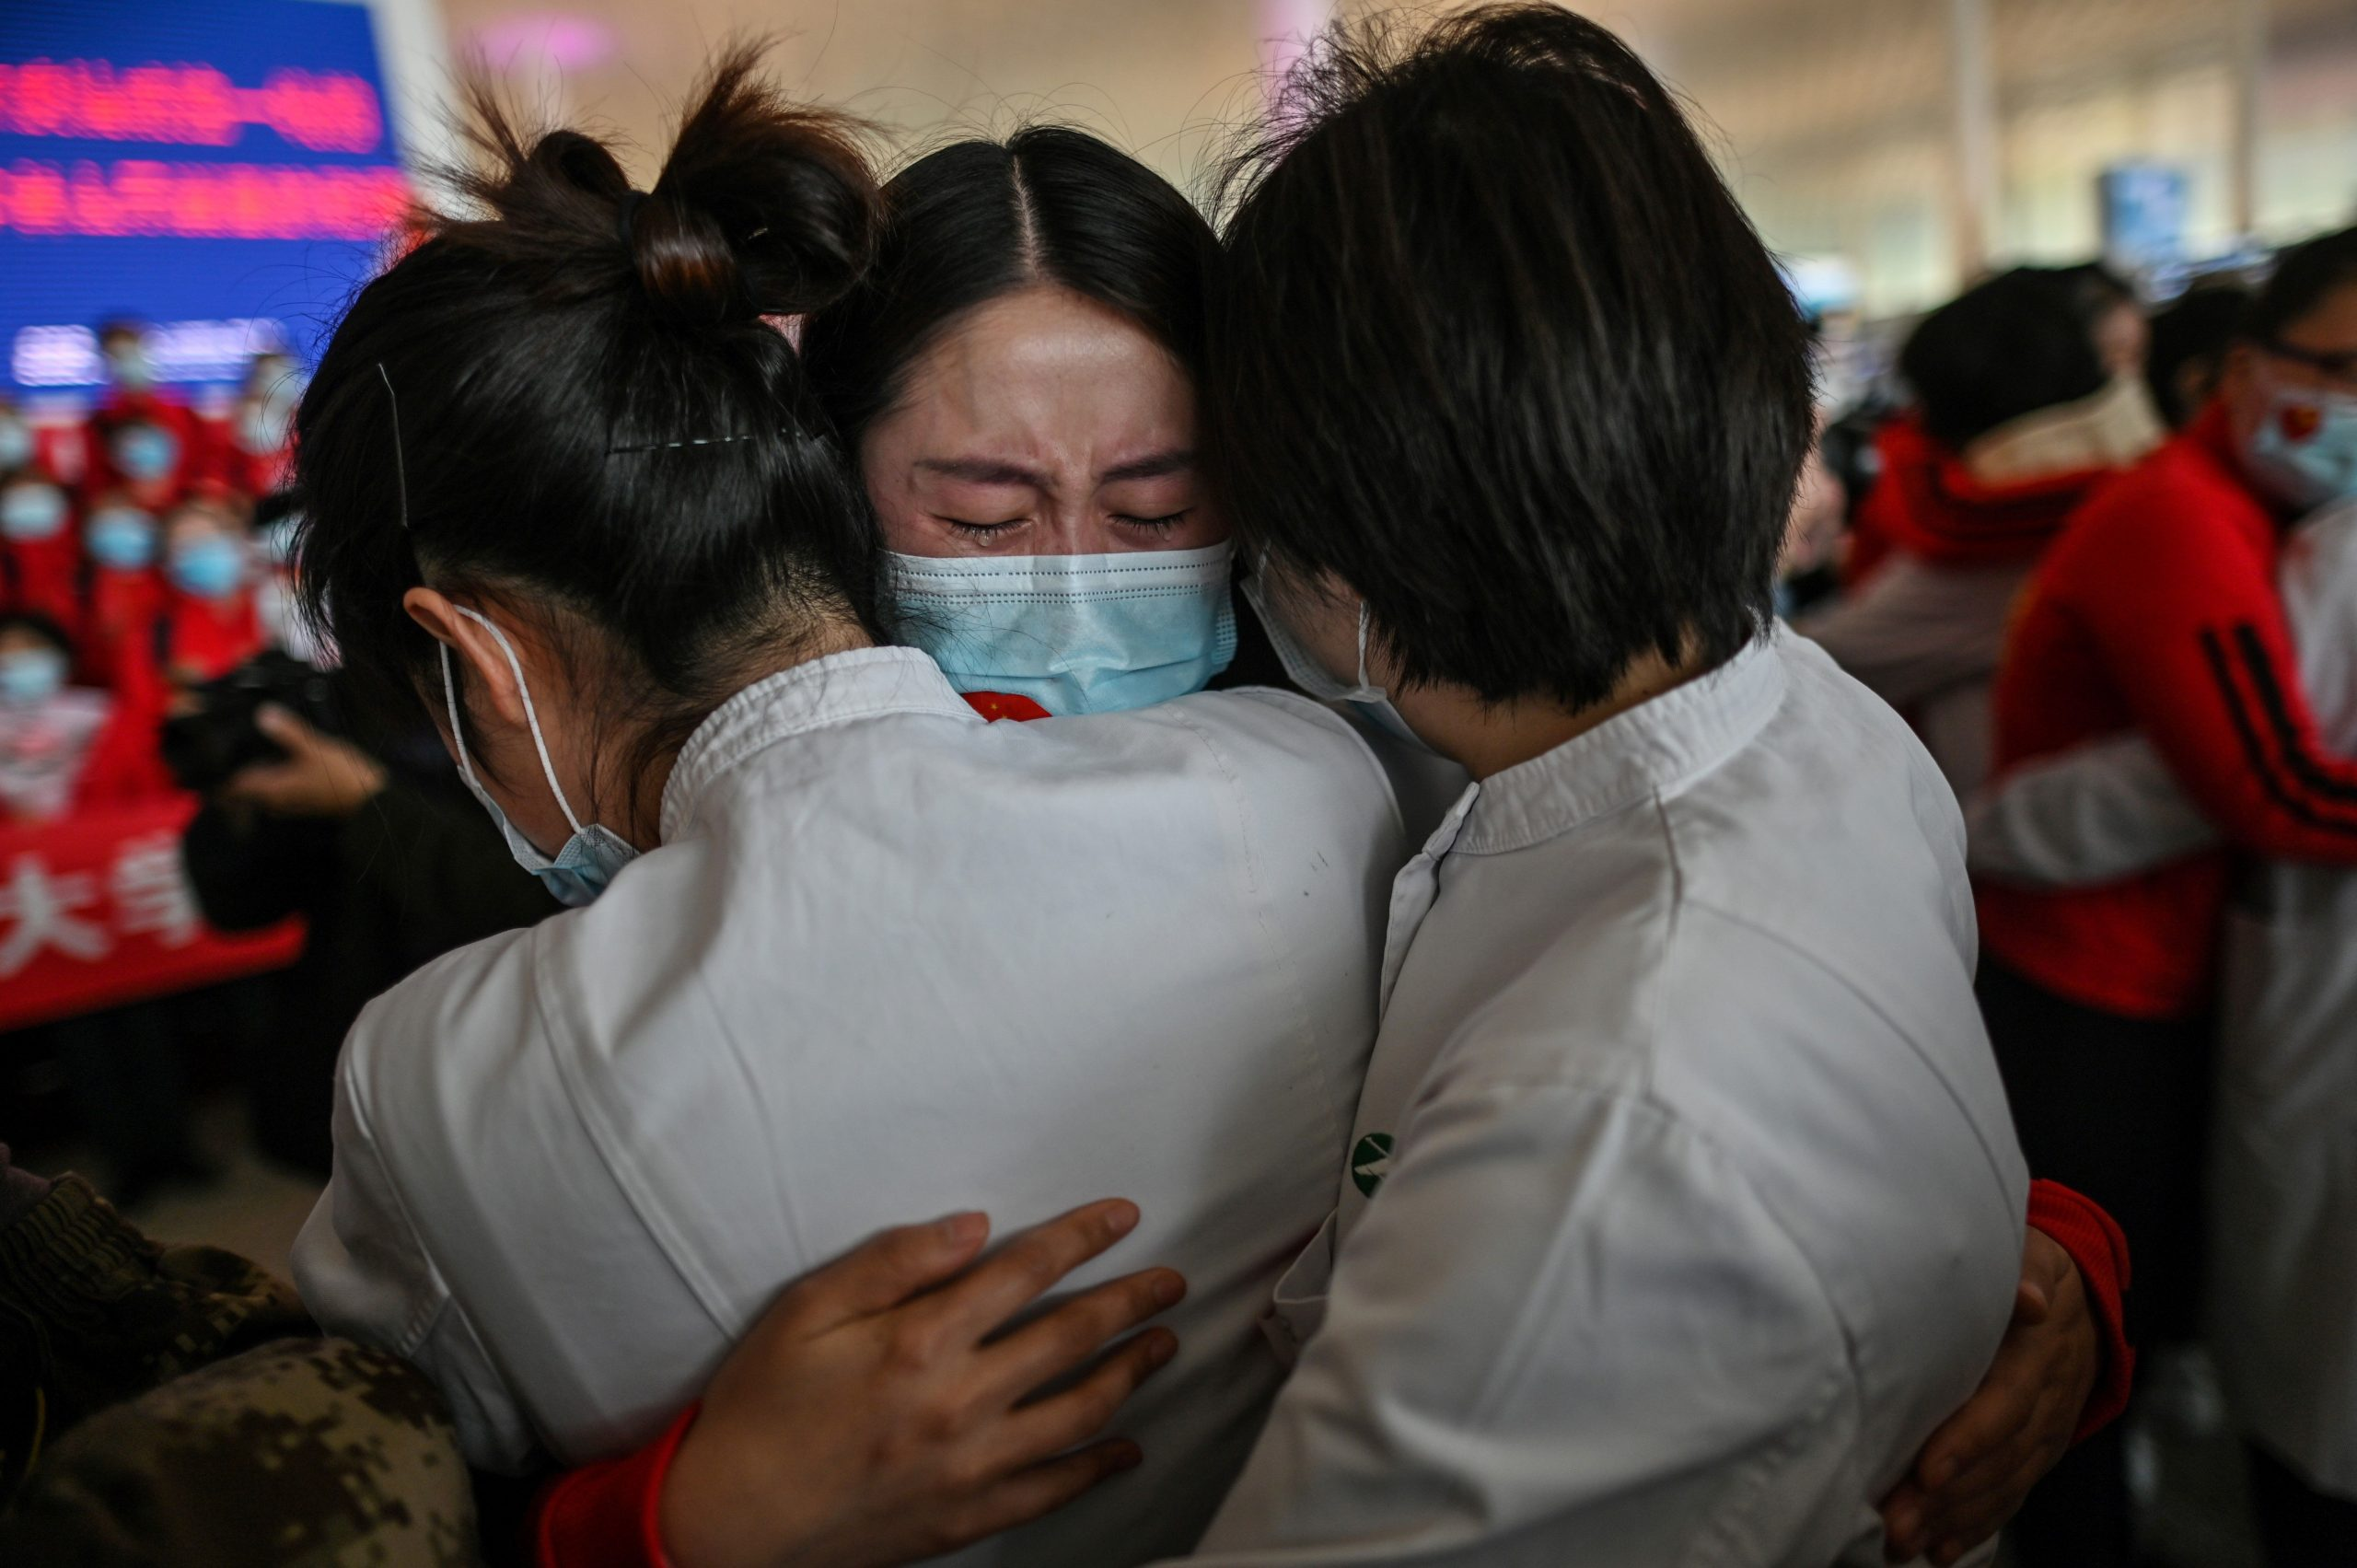 A medical staff member from Jilin Province (C) cries while hugging nurses from Wuhan after working together during the COVID-19 coronavirus outbreak in Wuhan during a ceremony at the Tianhe Airport after it was reopened today, in Wuhan in China's central Hubei province on April 8, 2020. - Thousands of Chinese travellers rushed to leave COVID-19 coronavirus-ravaged Wuhan on April 8 as authorities lifted a more than two-month prohibition on outbound travel from the city where the global pandemic first emerged. (Photo by Hector RETAMAL / AFP) (Photo by HECTOR RETAMAL/AFP via Getty Images)